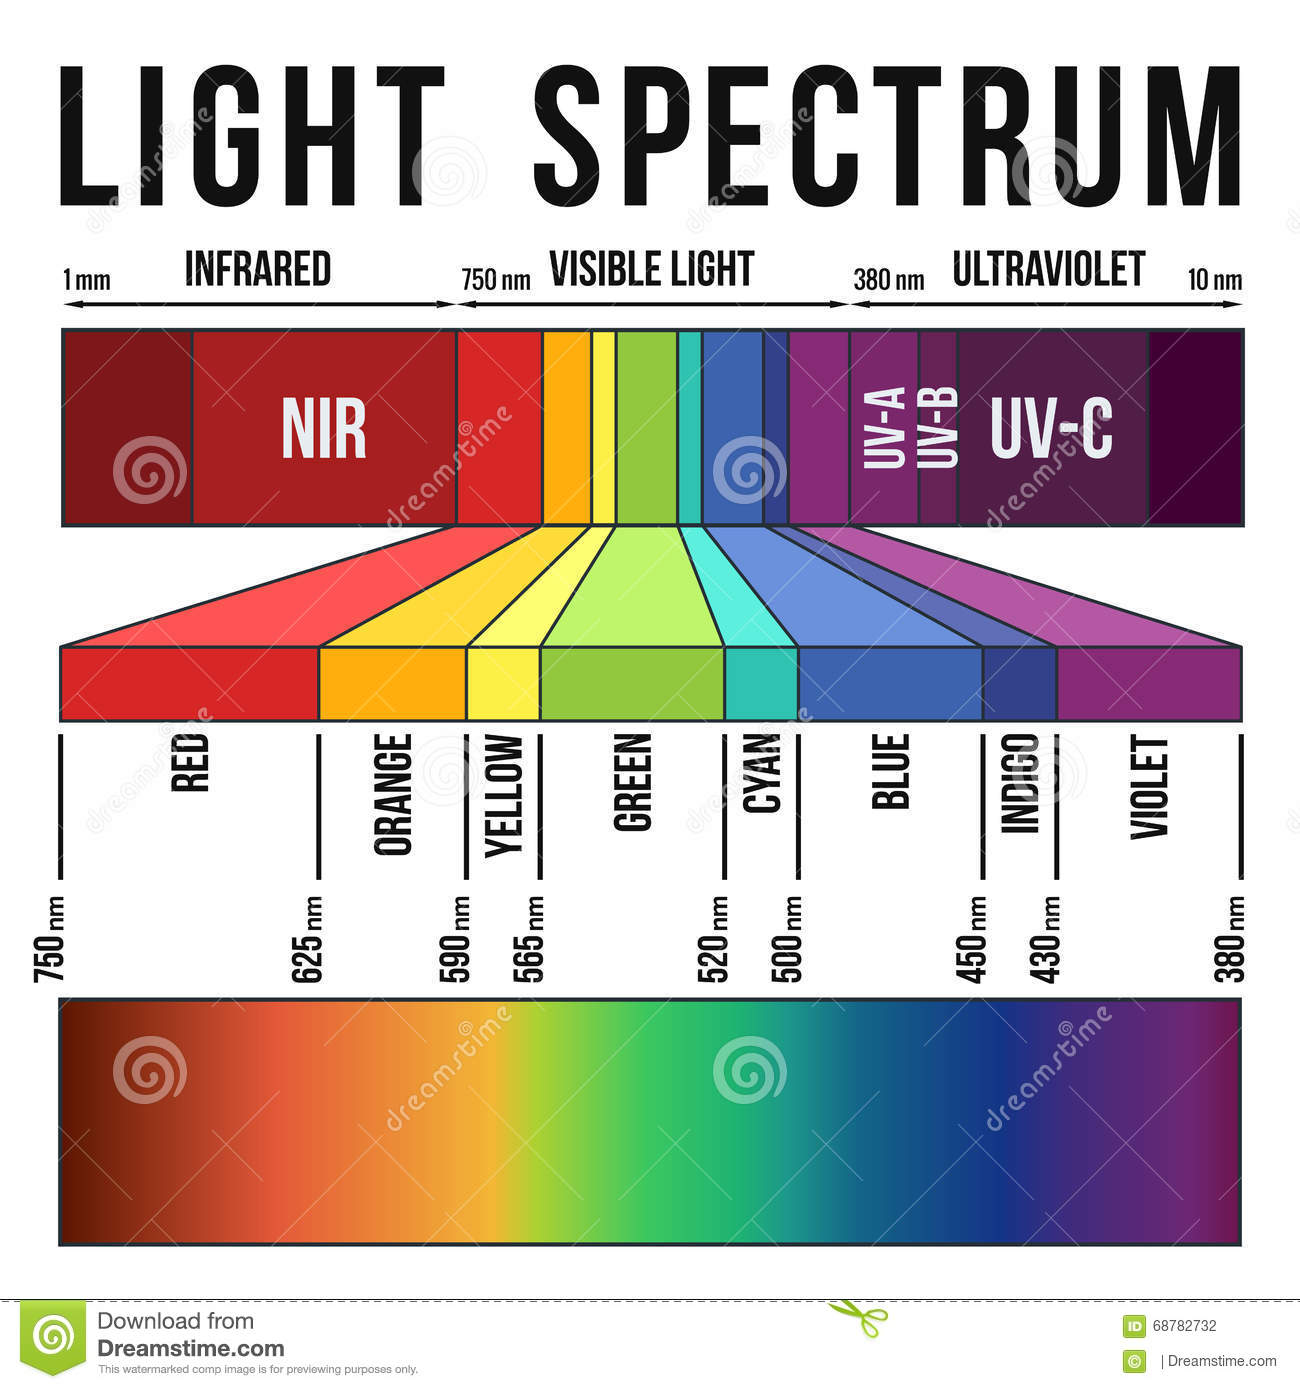 light spectrum stock illustration  image of design  infographic